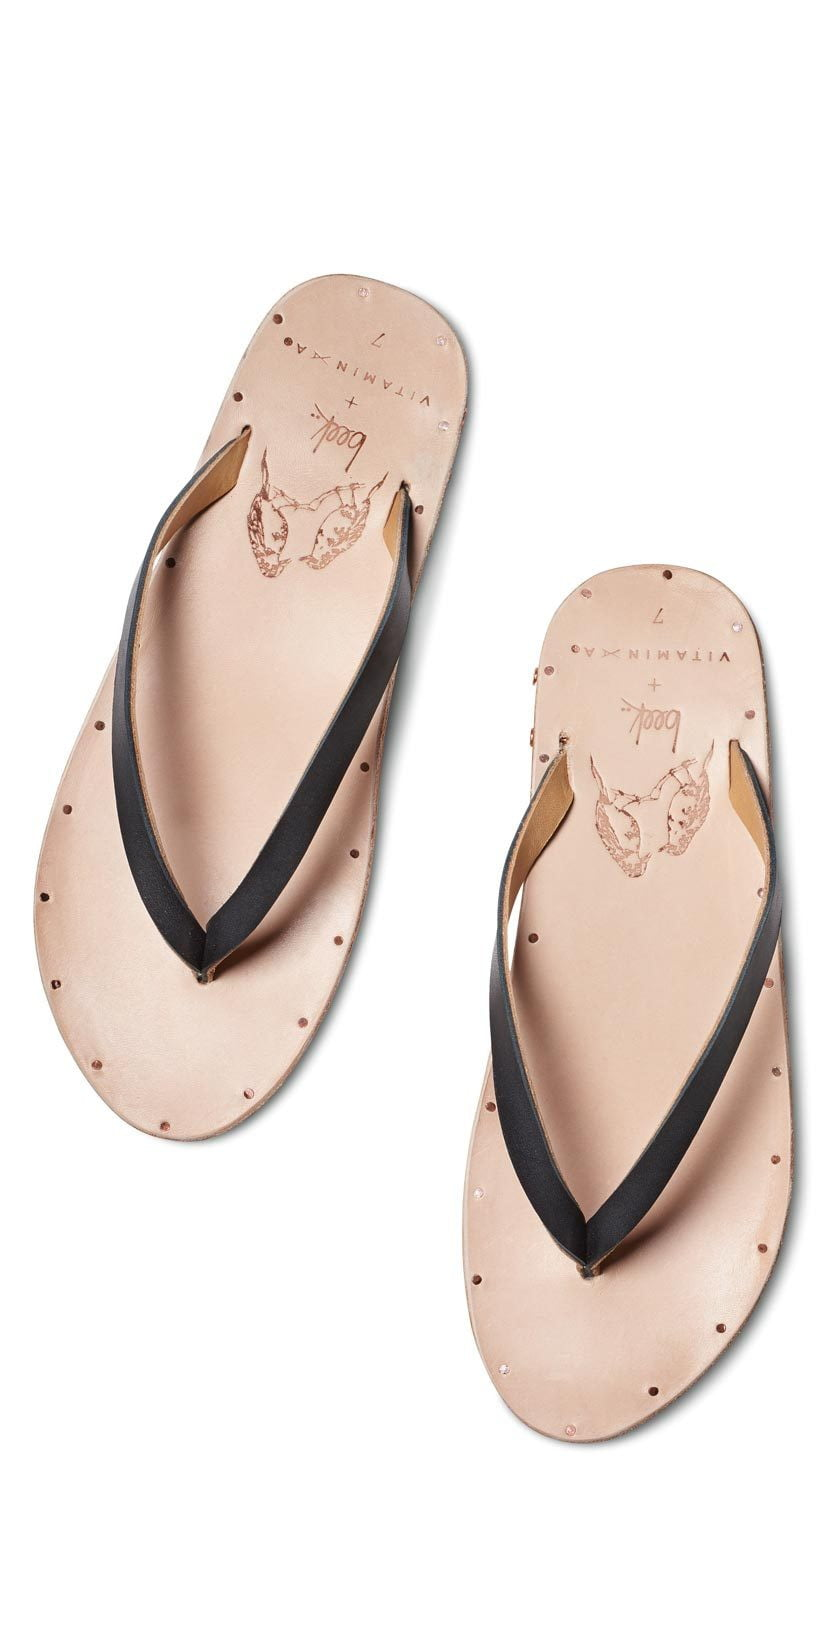 Vitamin A Beek Seabird Sandals in Black SEA-BKVA: